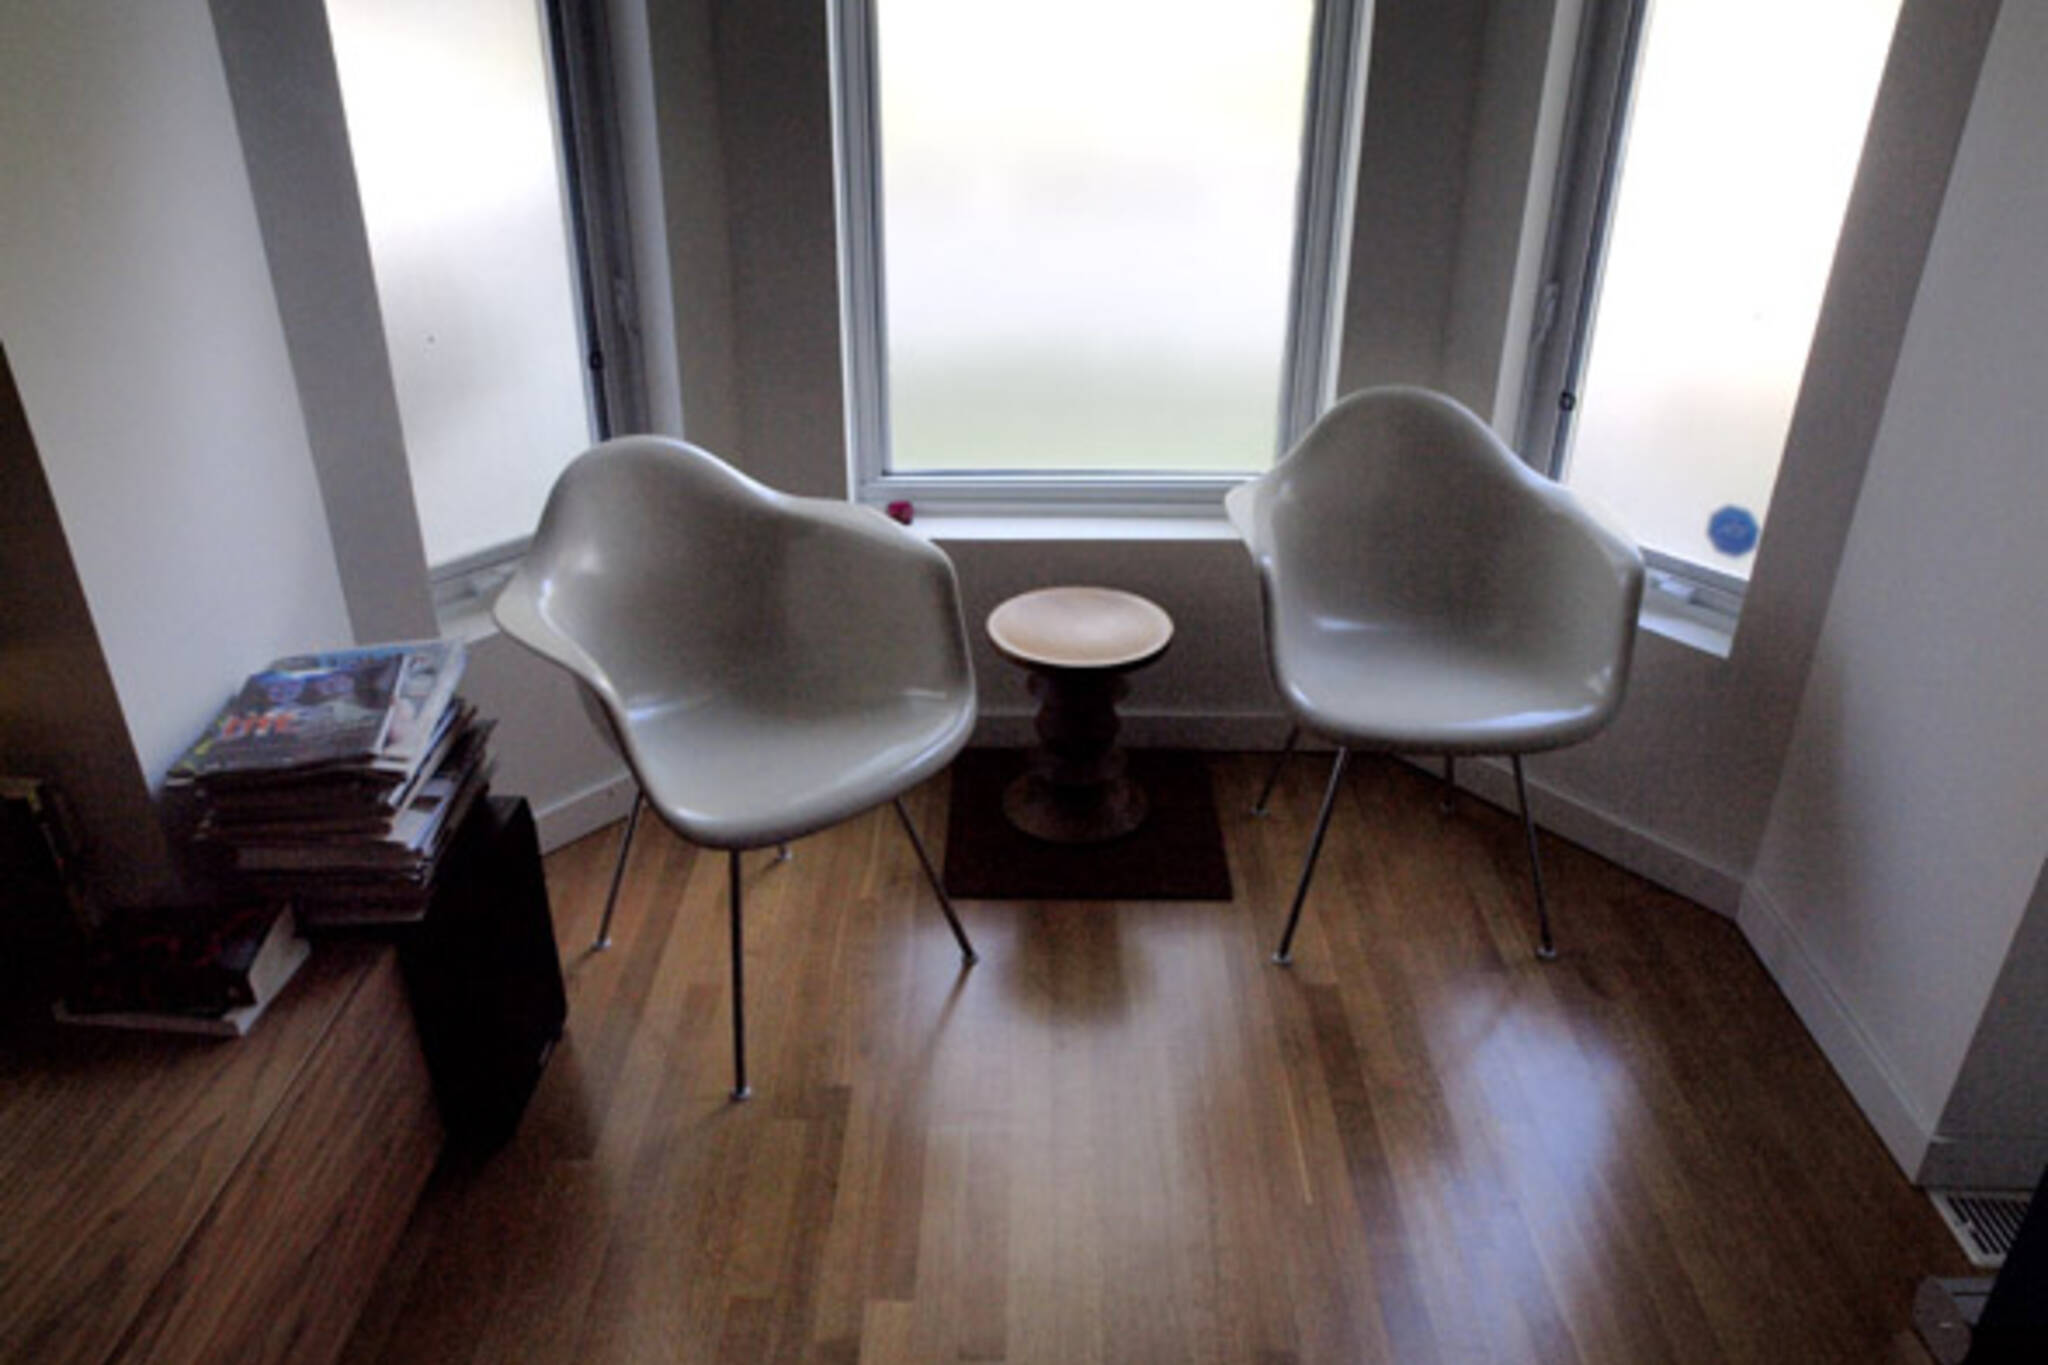 chairs in the living room of Joe Troppmann and Danielle Lam-Kukzak